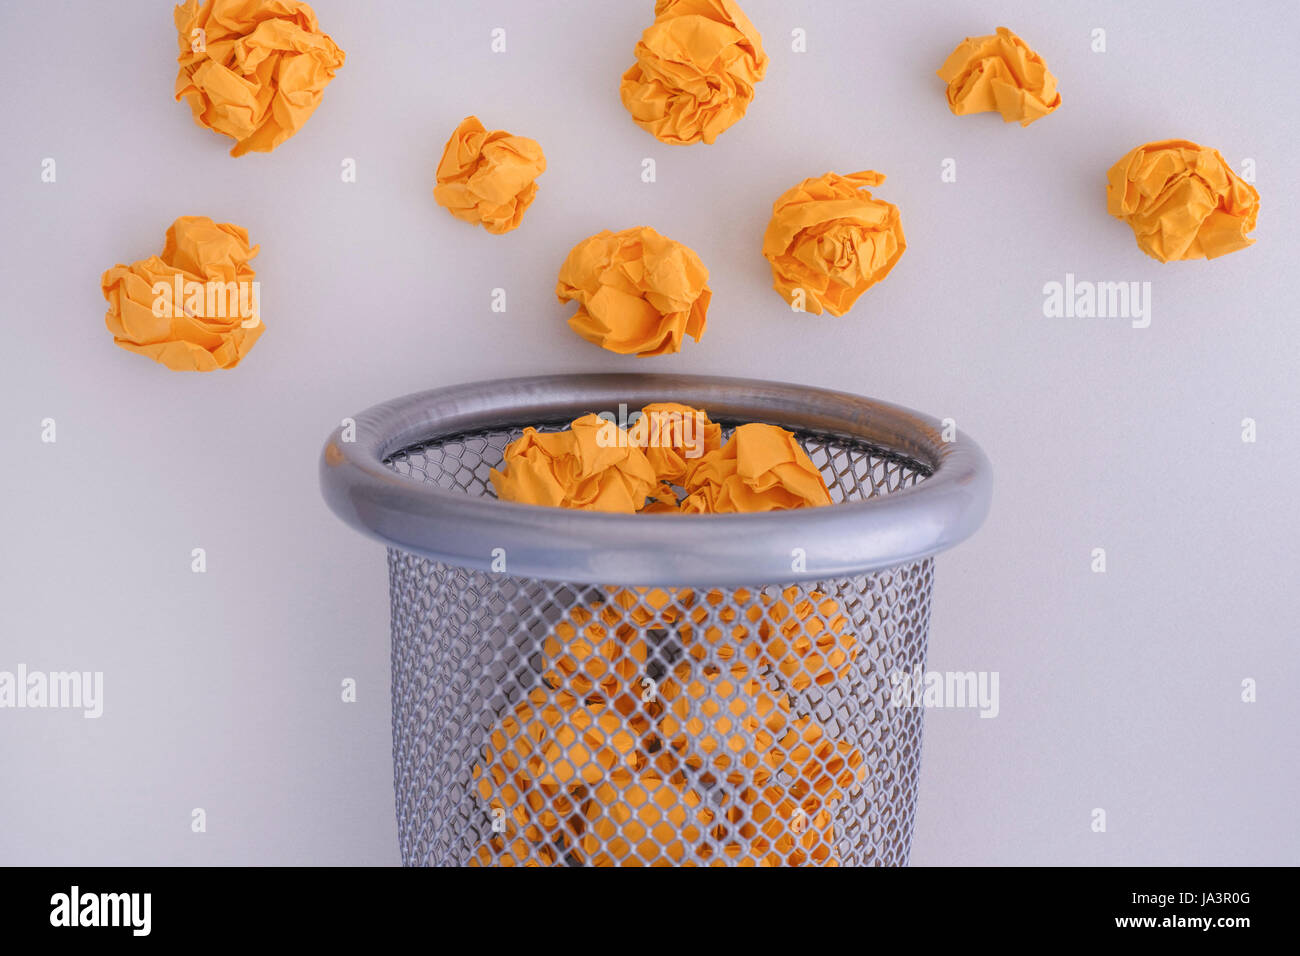 Yellow crumpled paper balls rolling out of a trash can. Idea Concept. - Stock Image